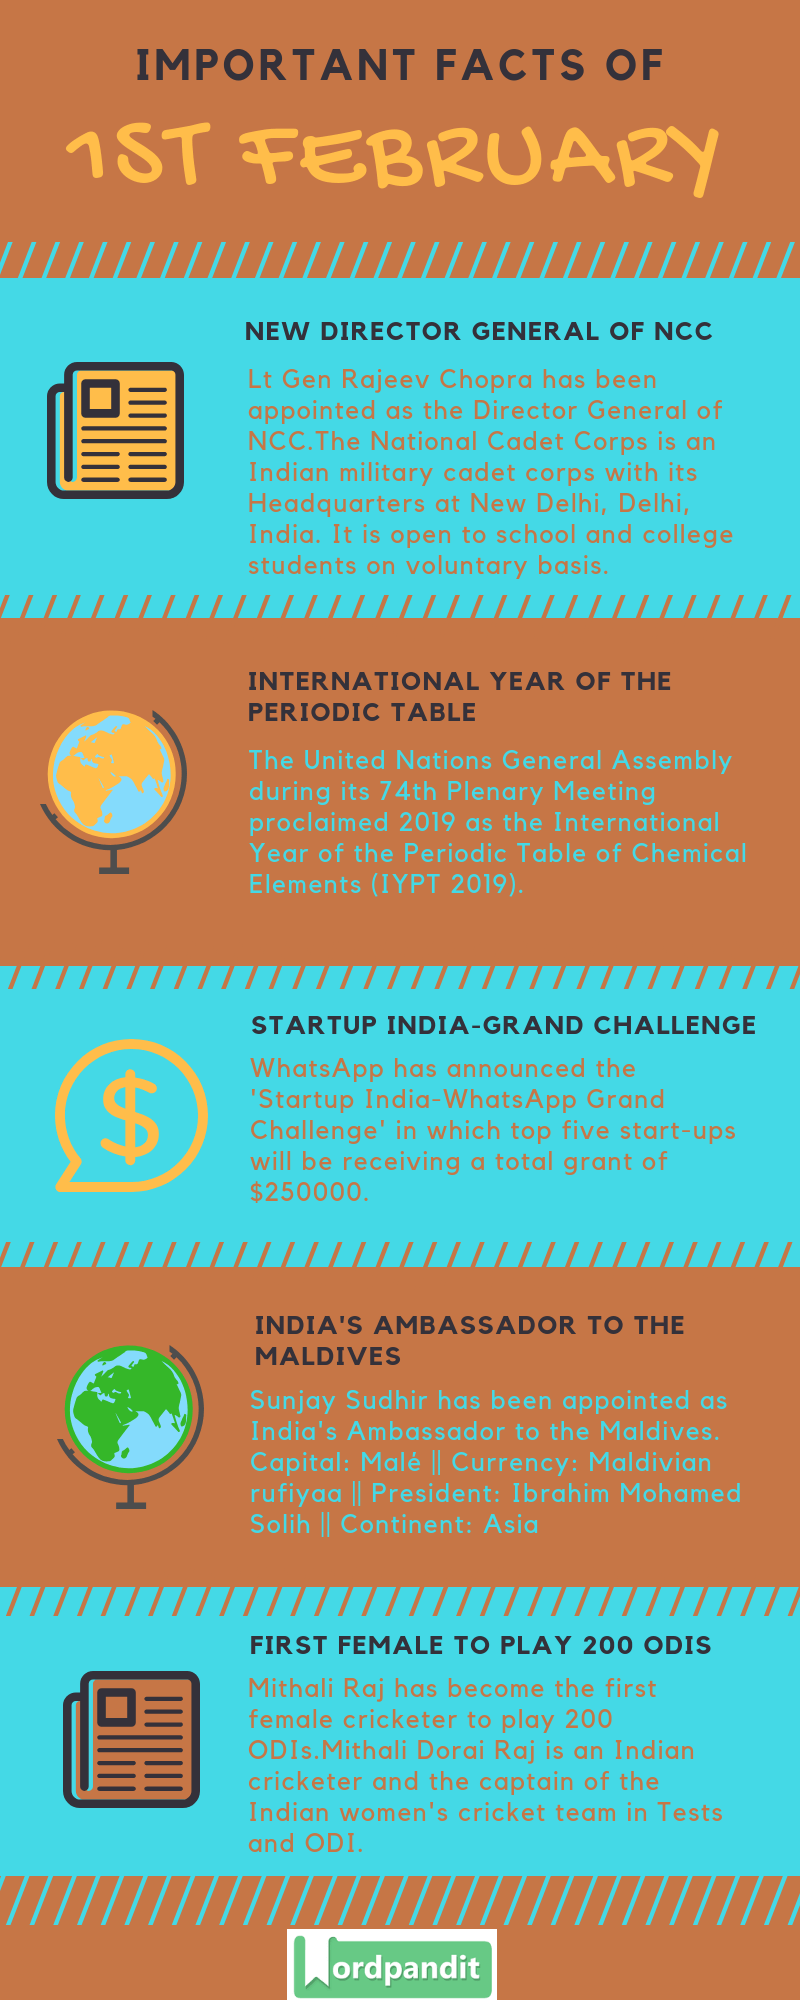 Daily Current Affairs 1 February 2019 Current Affairs Quiz 1 February 2019 Current Affairs Infographic